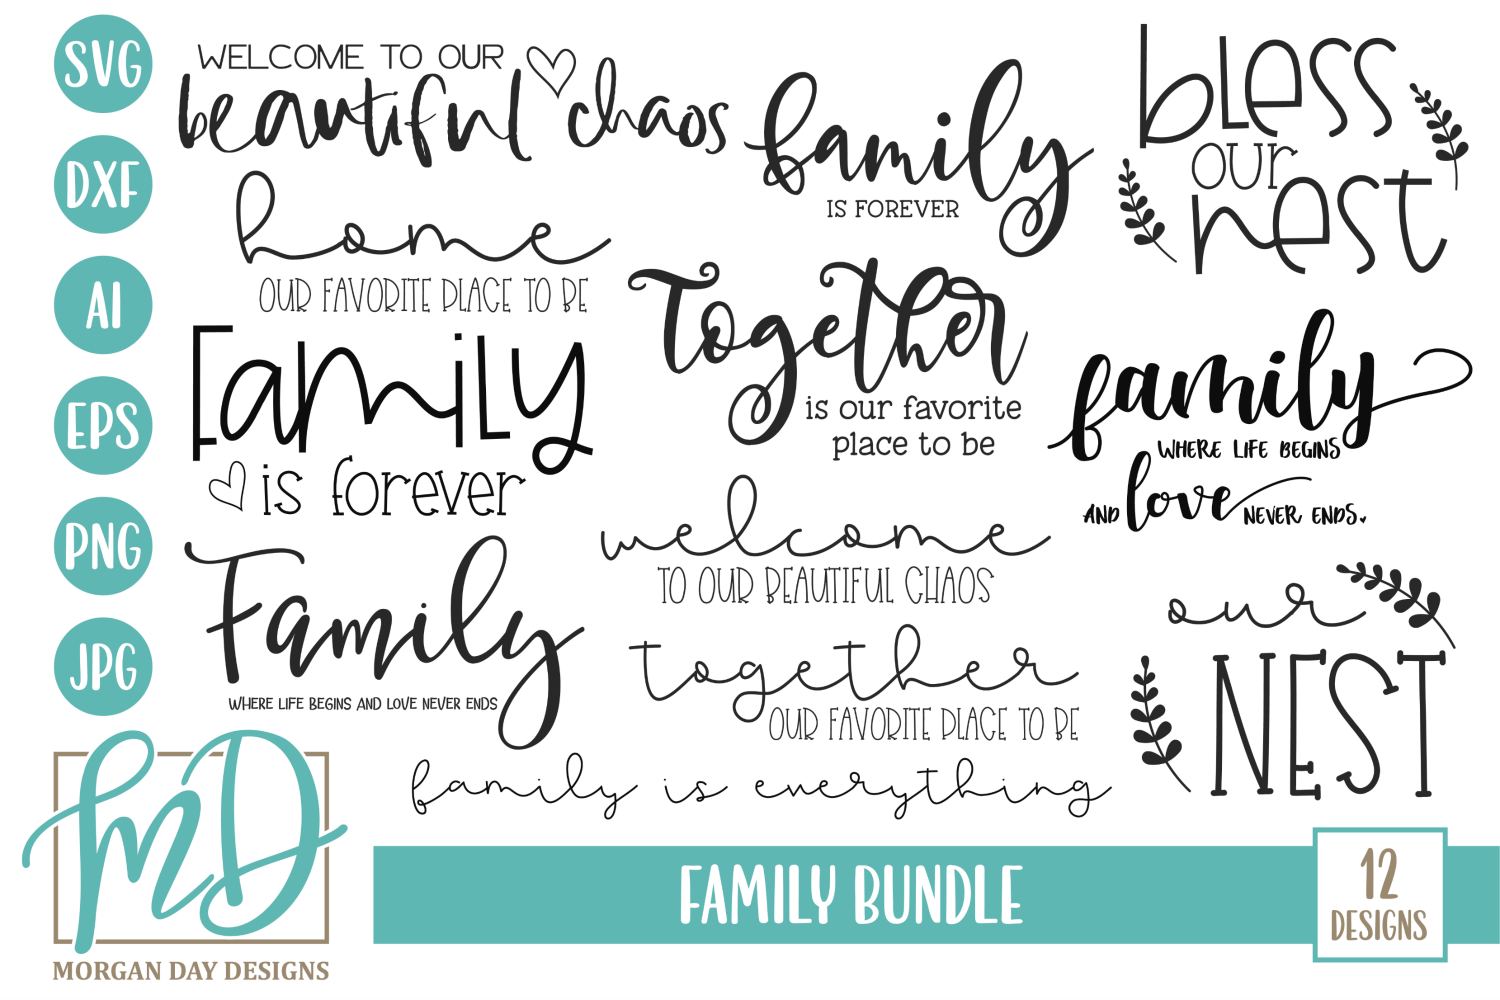 Welcome - Home - Doormat - Sign - Family Bundle SVG example image 1